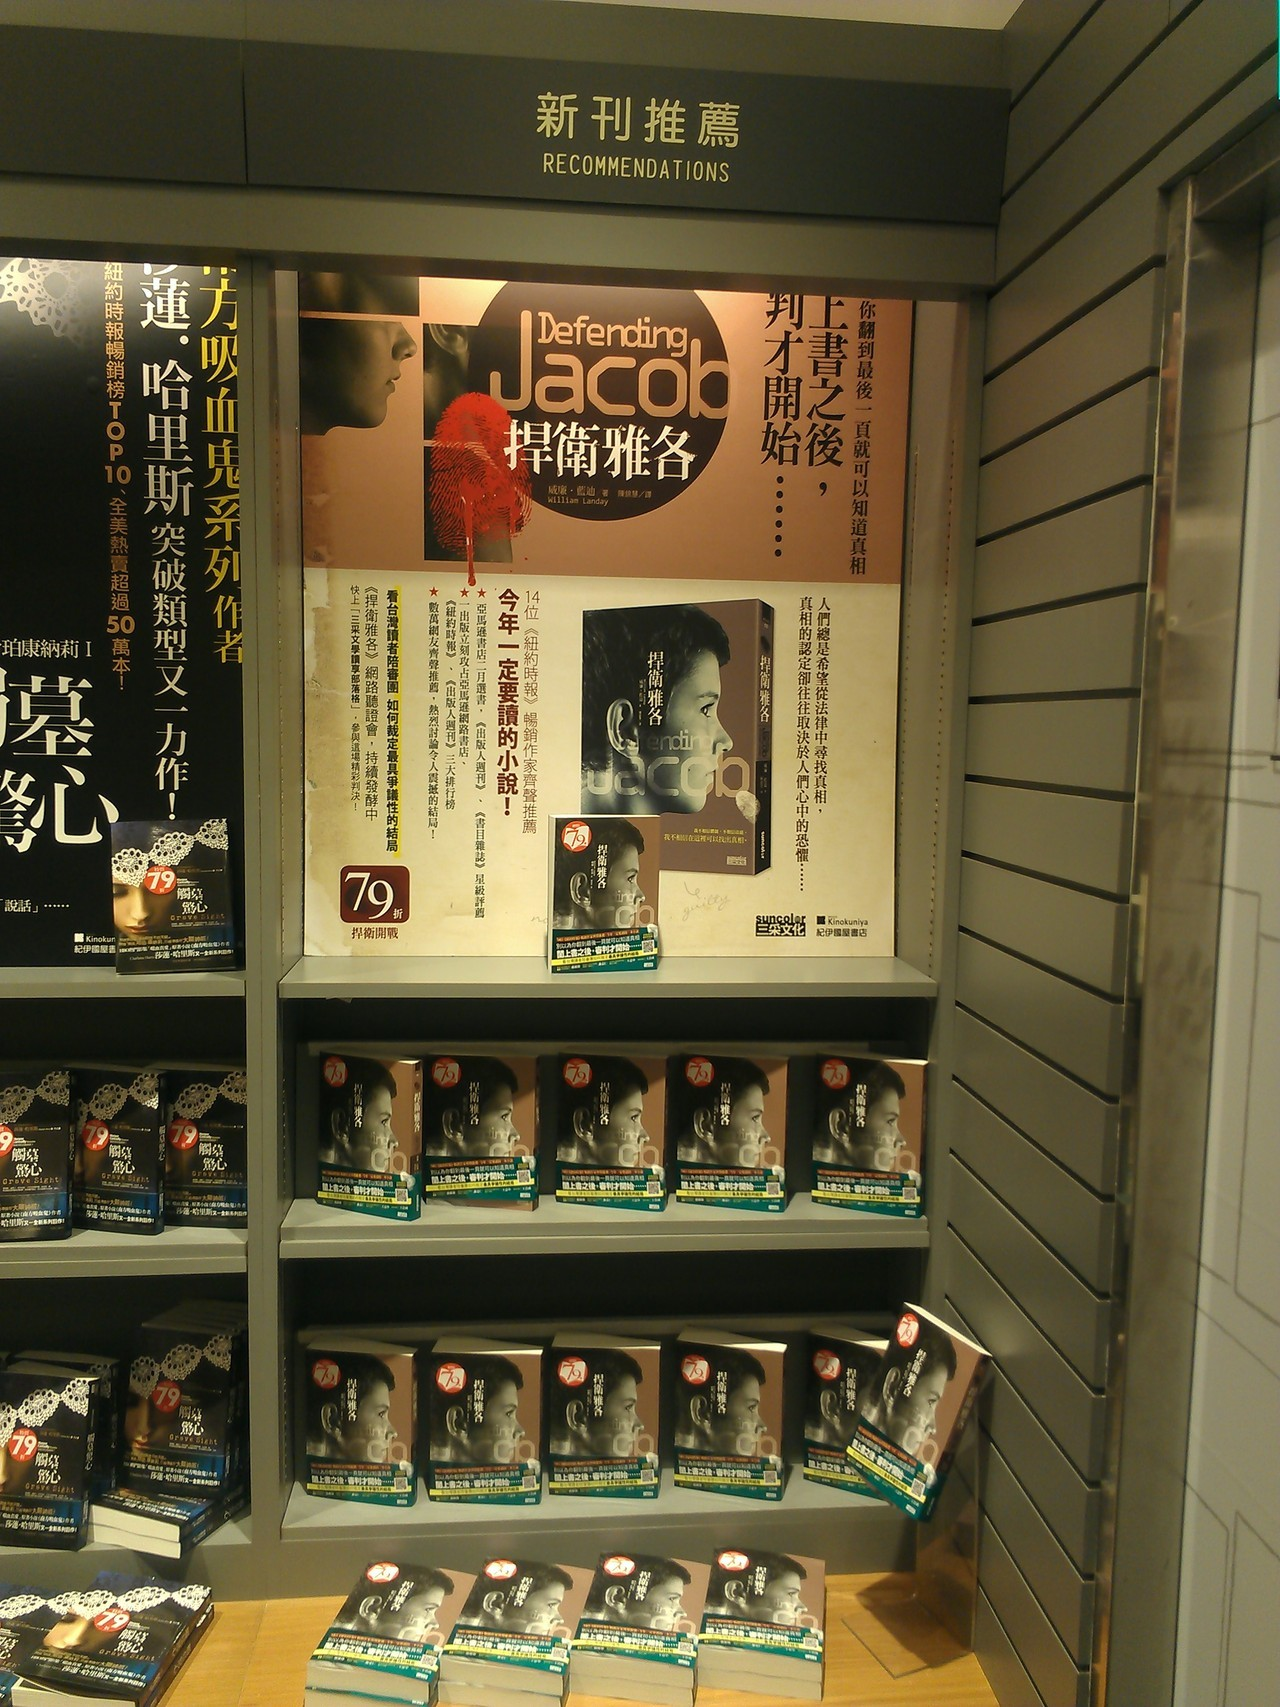 Defending Jacob on sale in Taiwan today.